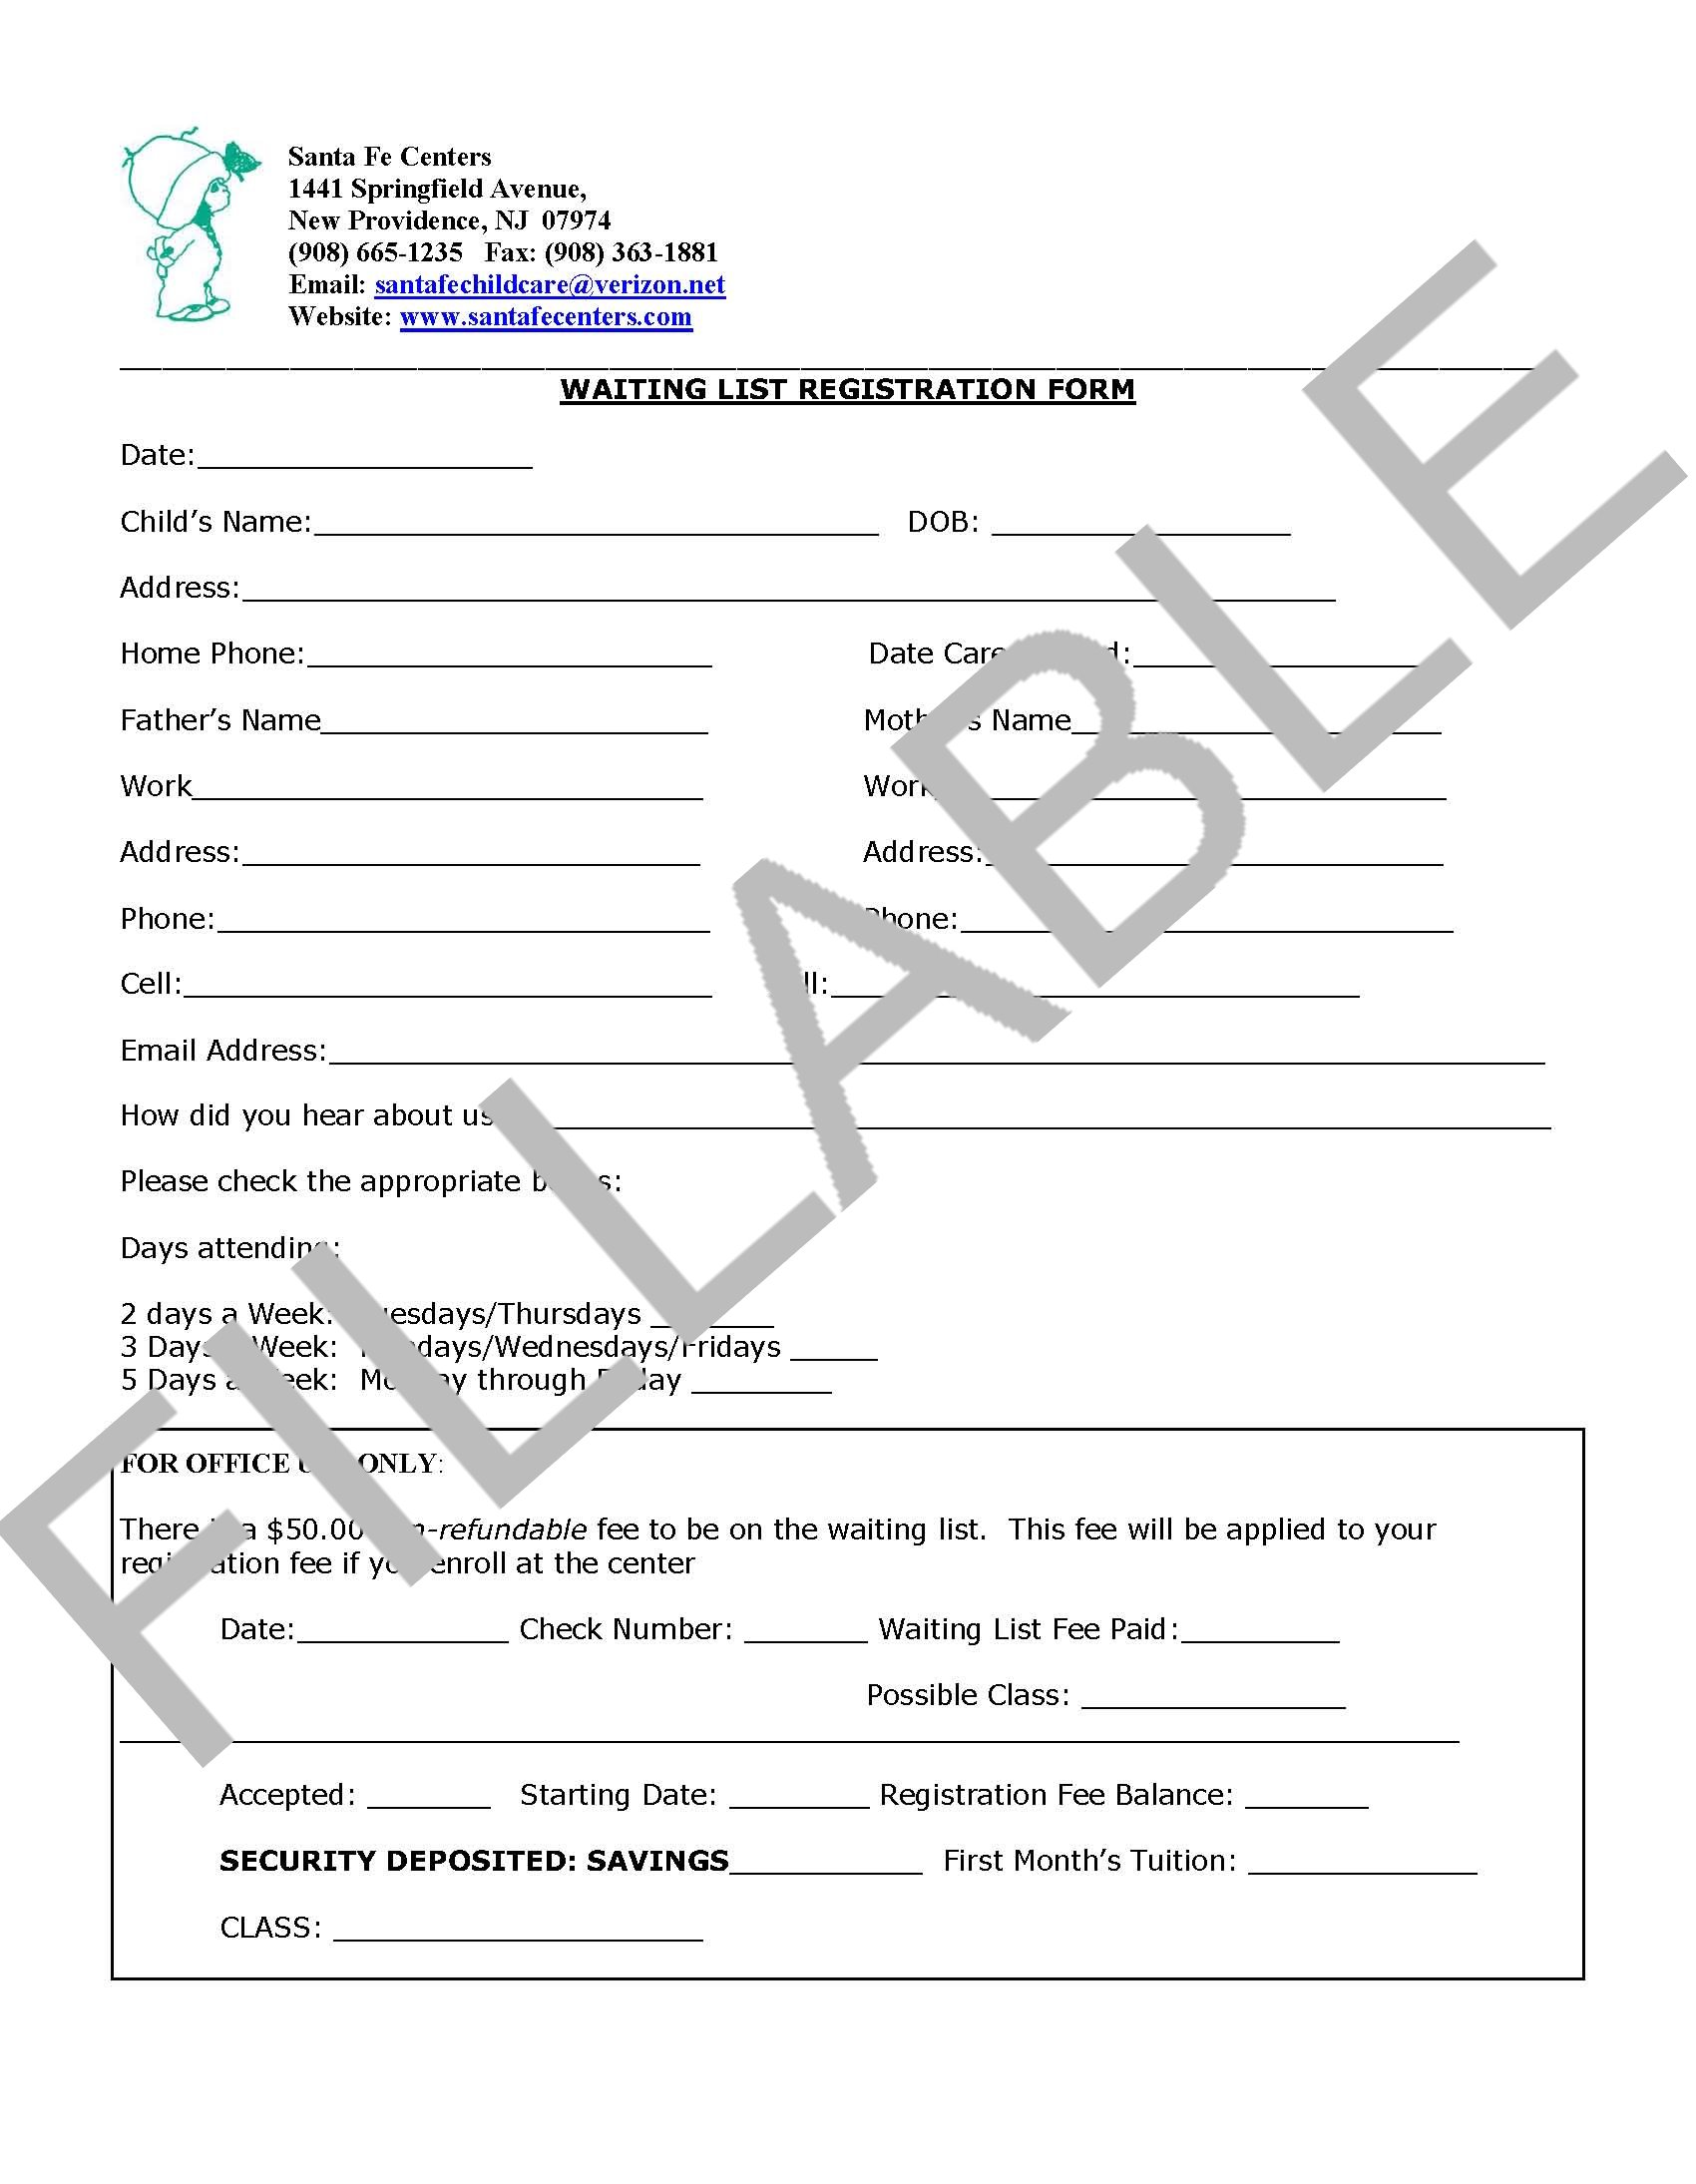 Waitlist Registration Form-FILLABLE